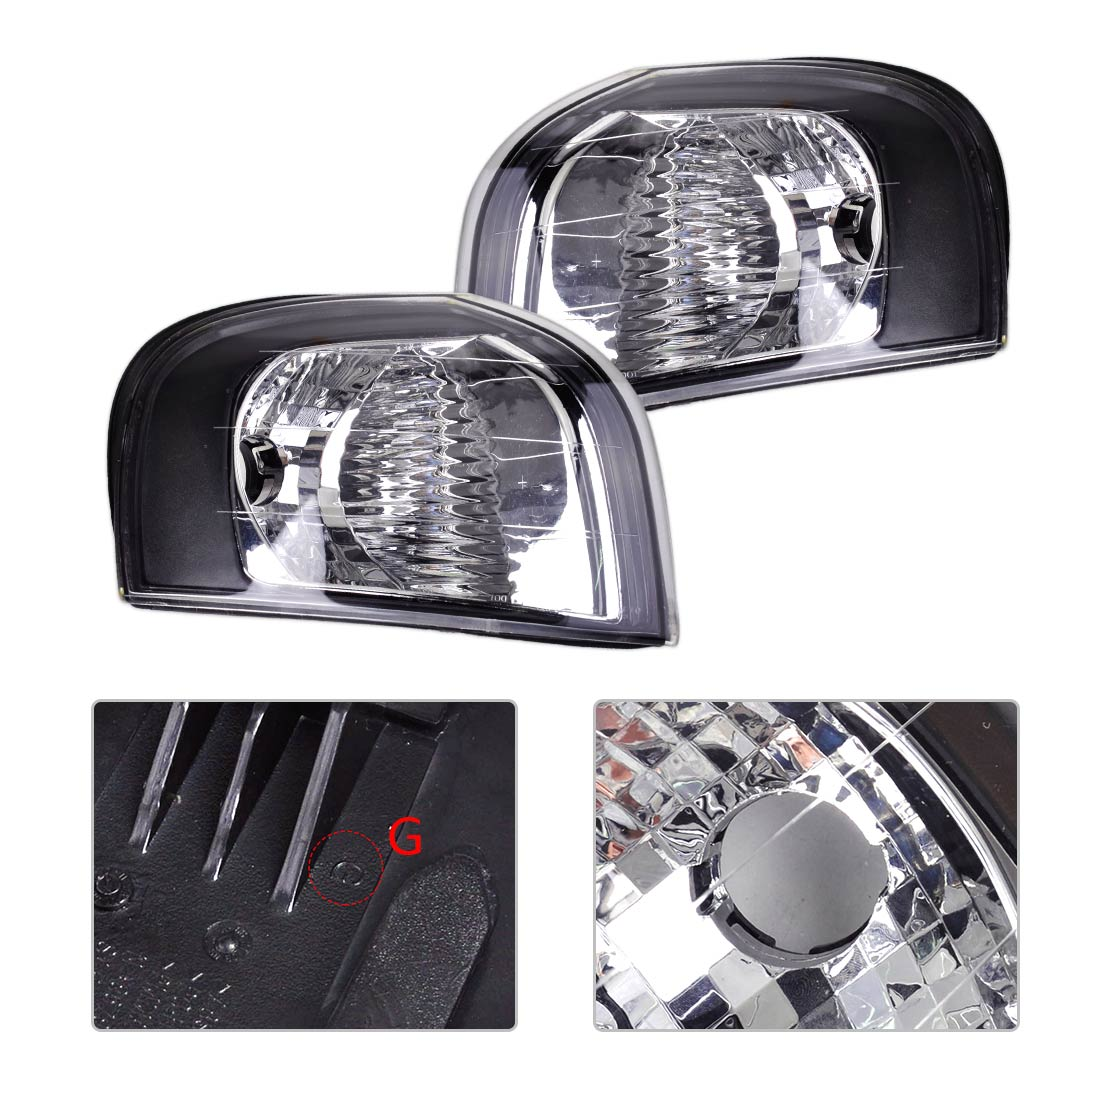 beler 2pcs Left & Right Turn Signal Corner Light Lamp for Volvo S80 1999 2000 2001 2002 2003 2004 2005 2006 30655422 30655423 jeazea glove box light storage compartment lamp 1j0947301 1j0 947 301 for vw jetta golf bora octavia 2000 2001 2002 2003 2004